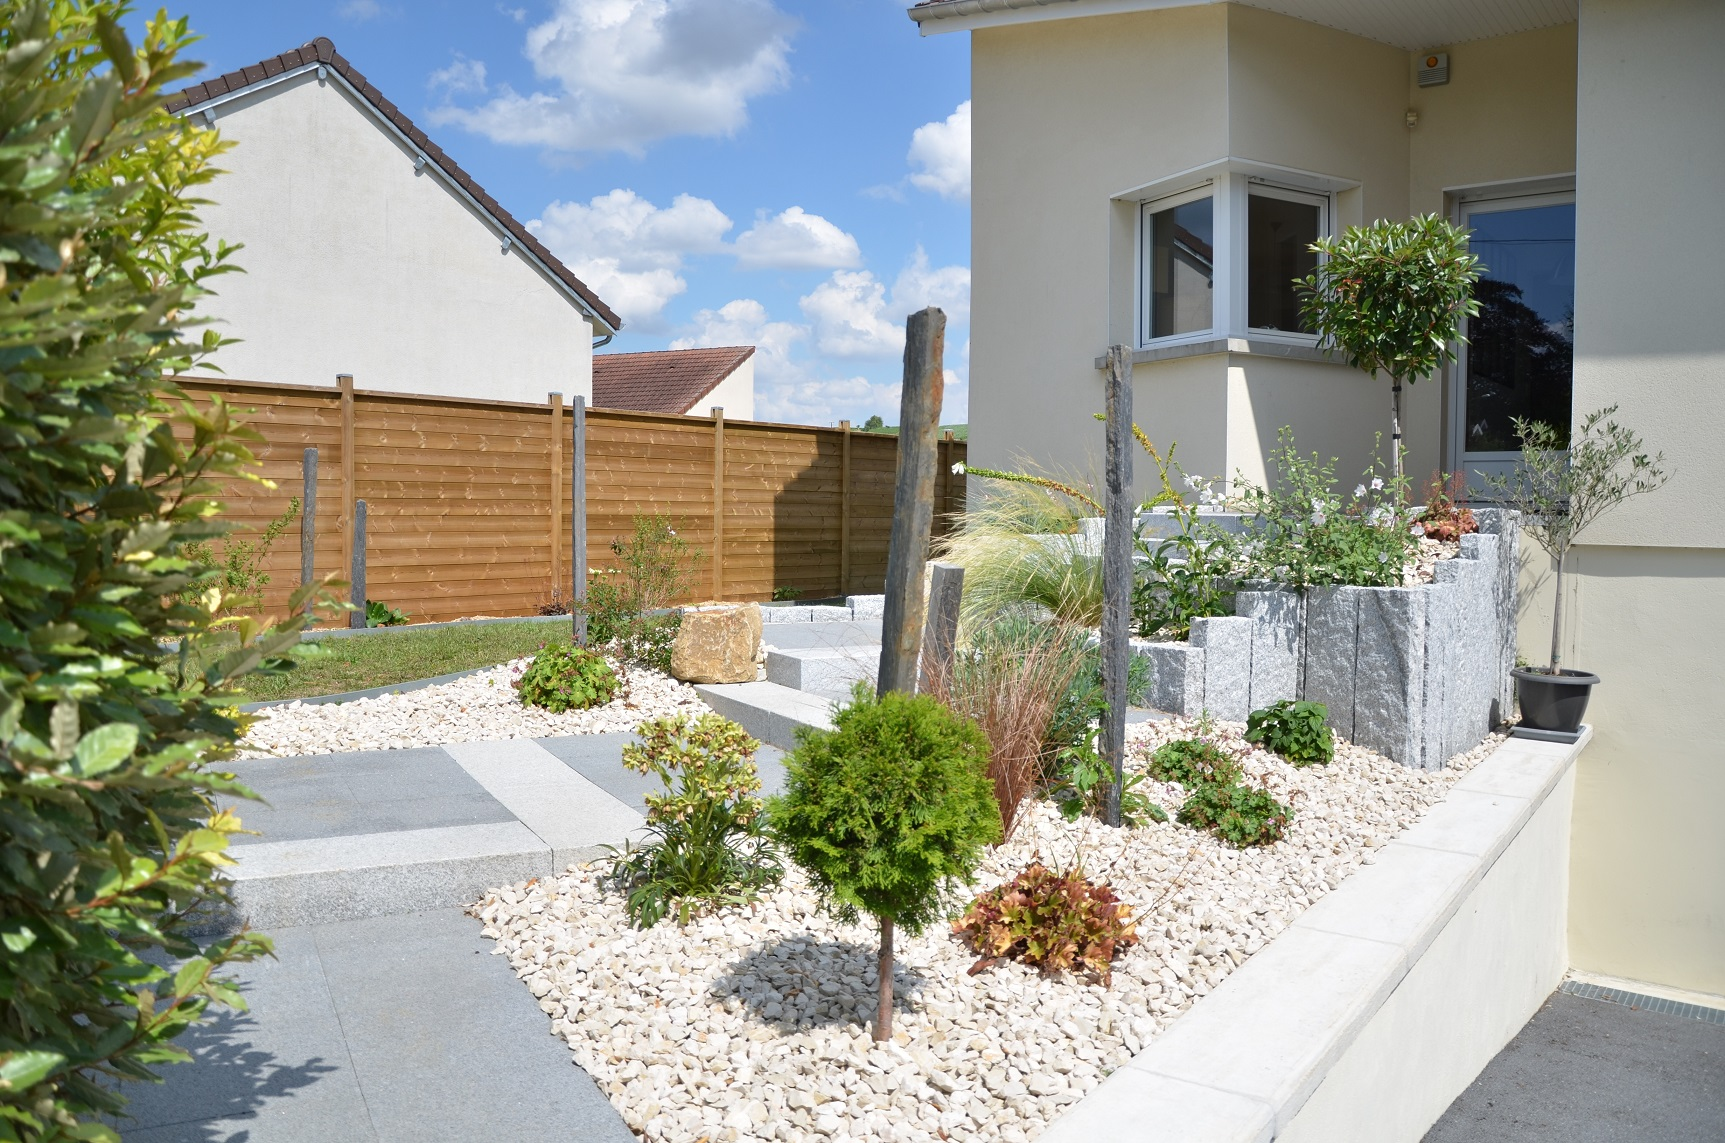 All e acc s maison garage fl jardin paysagiste dans la for Amenagement allee devant maison